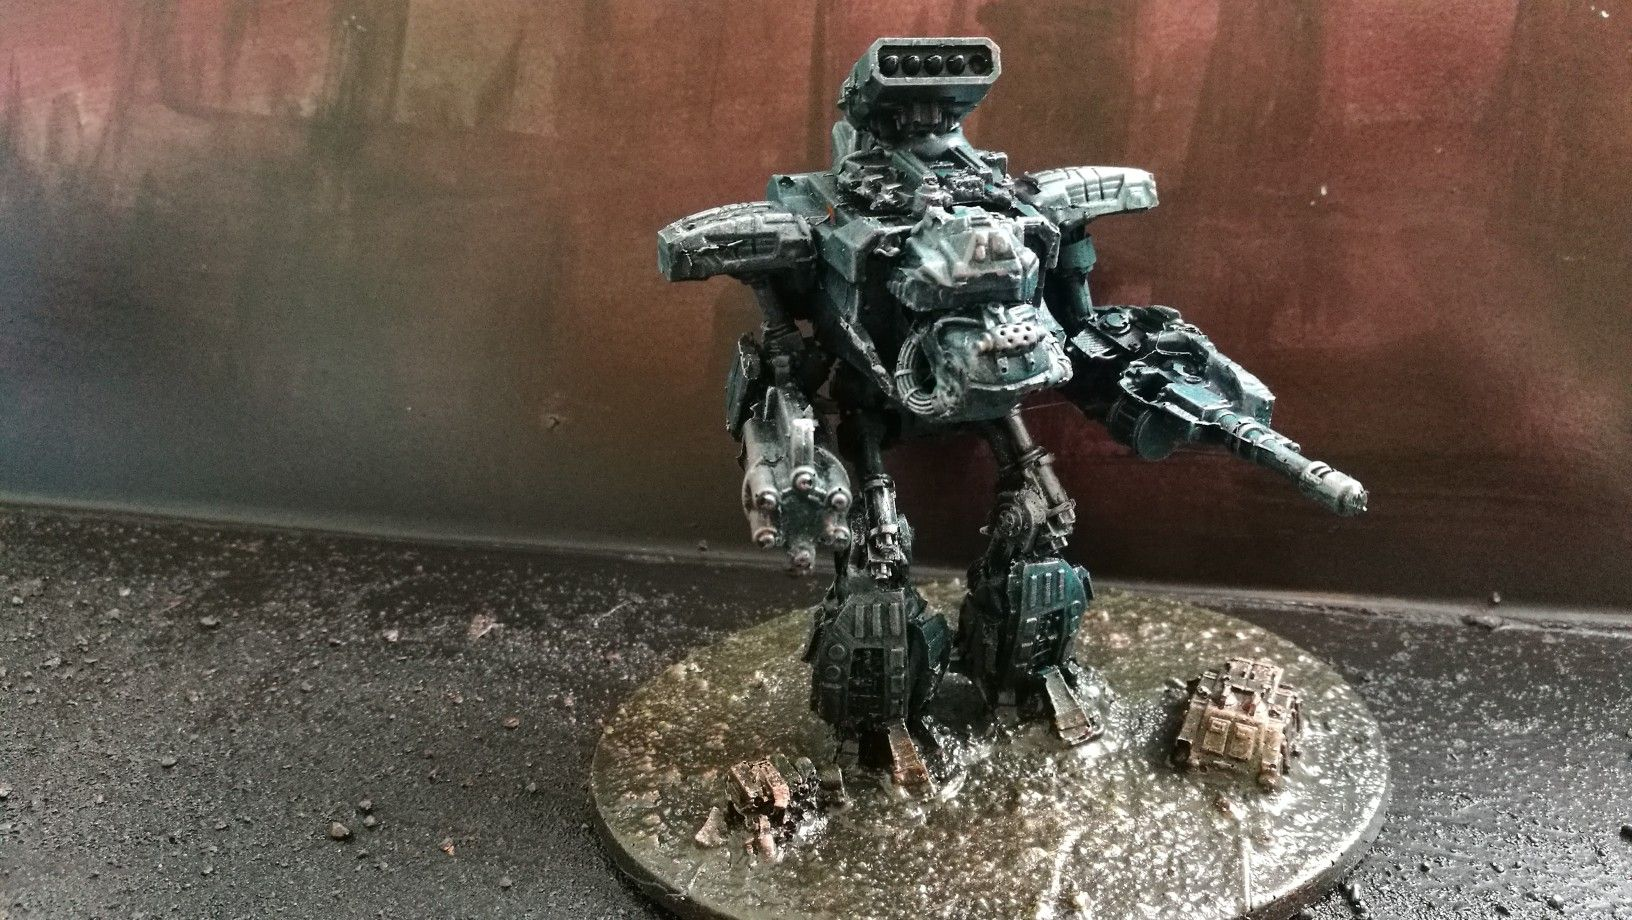 Warhammer Epic 40k true scale reaver titan  It can also be